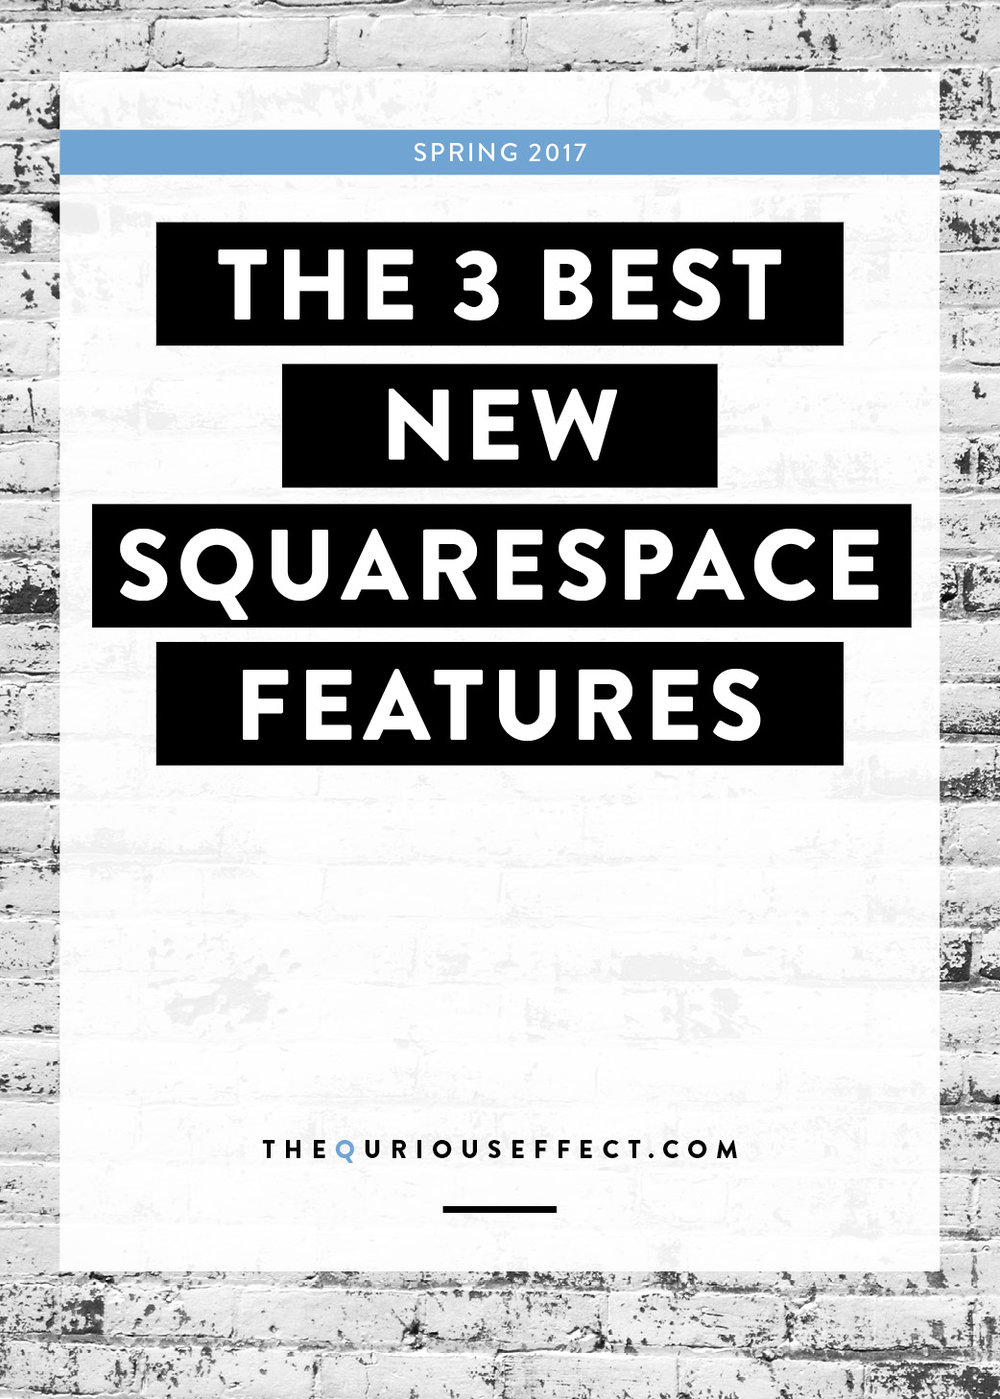 The 3 Best, New Squarespace Features You Need to Try by The Qurious Effect. A squarespace website design studio.